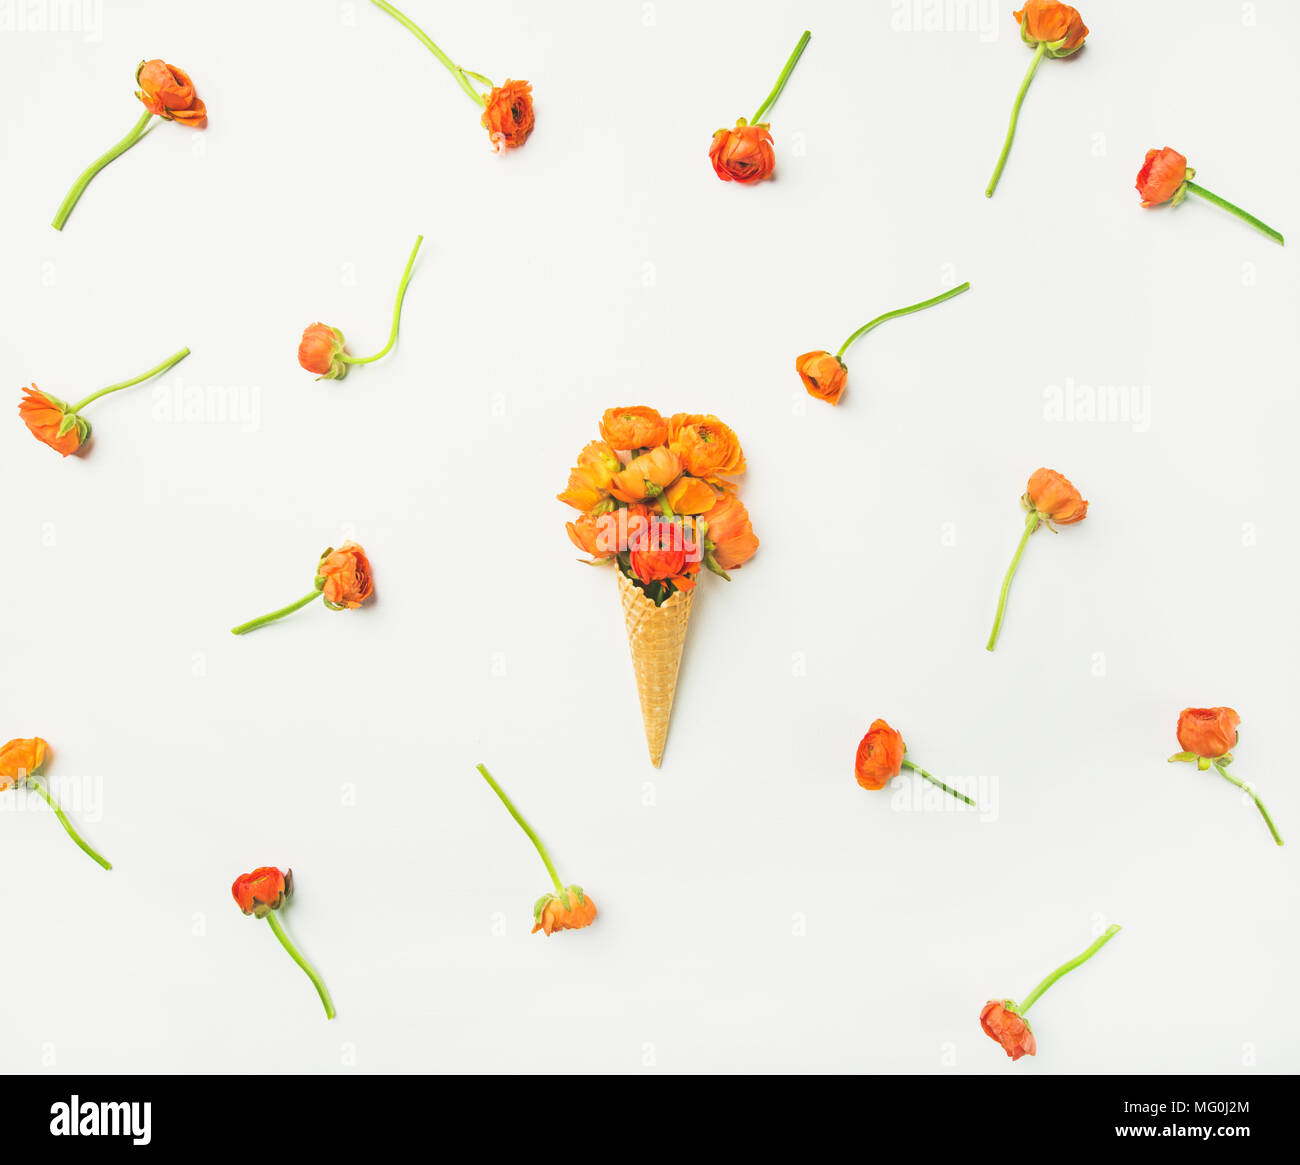 Waffle cone with orange buttercup flowers over white background, flat-lay - Stock Image